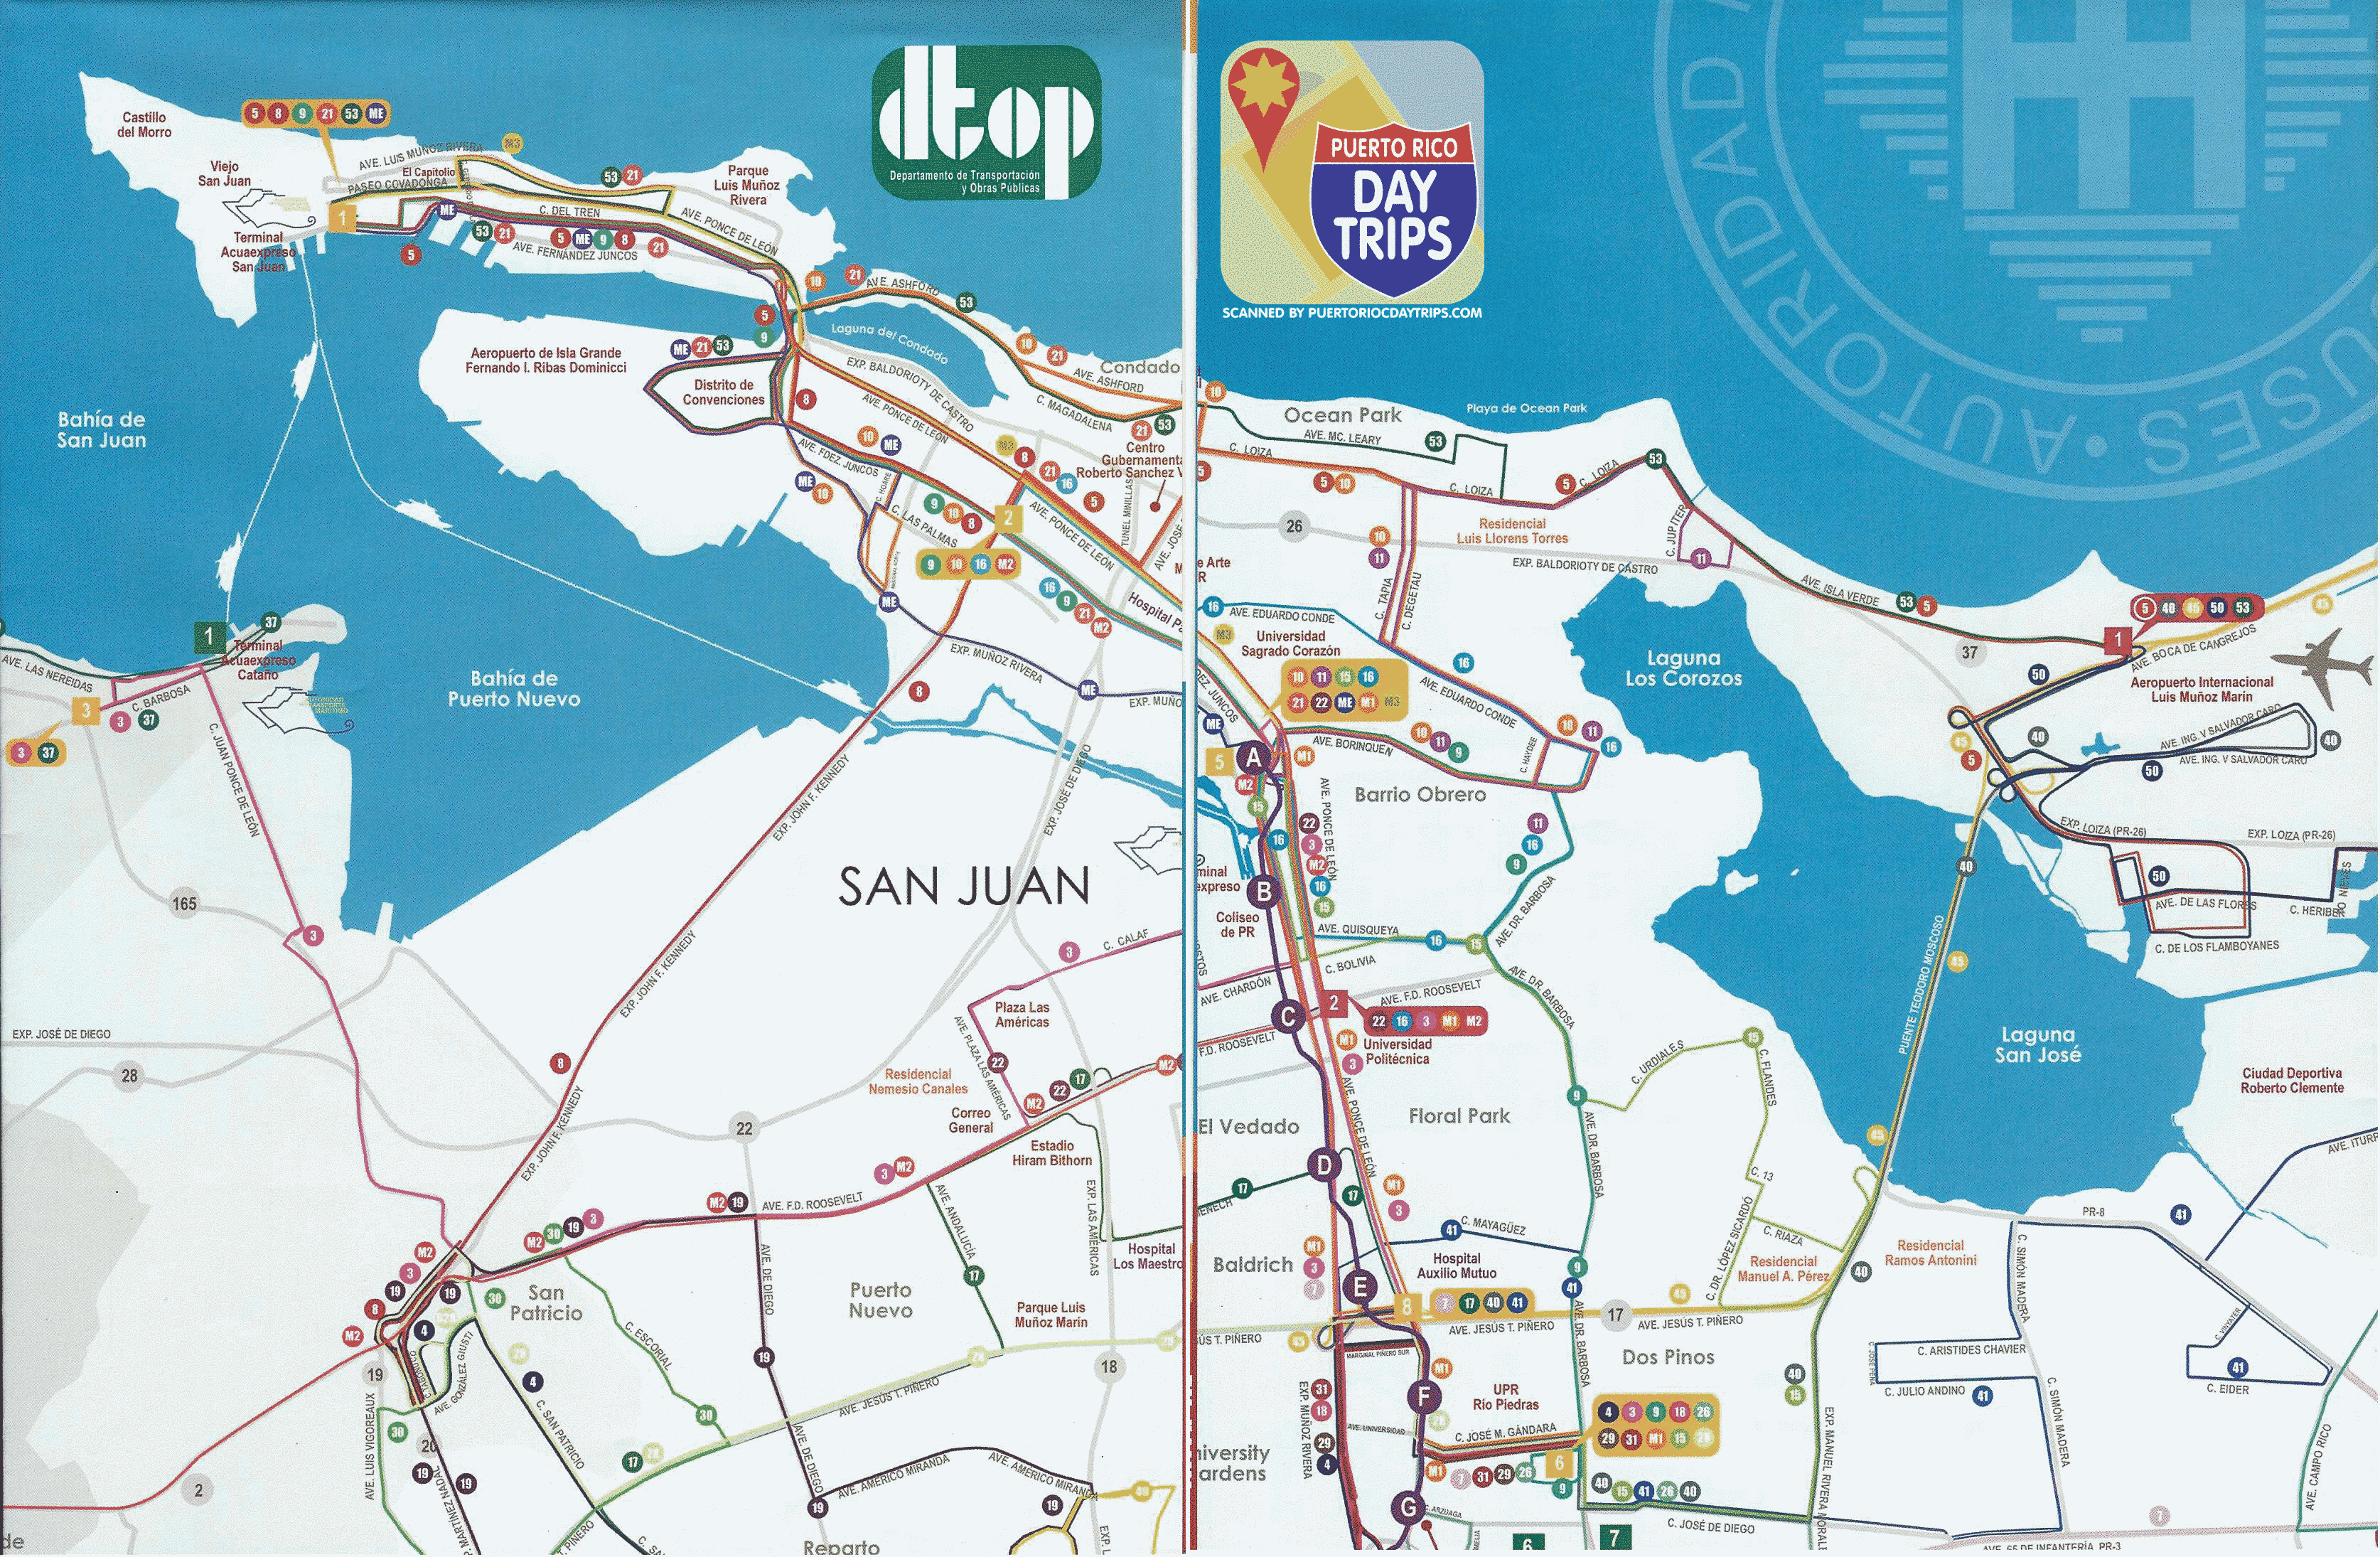 San Juan Bus Route Map UNRELIABLE but good to have just in ... San Juan Bus Map on anchorage bus map, puerto rico map, fort worth bus map, miami bus map, chicago bus map, luxembourg city bus map, houston bus map, albany bus map, la paz bus map, santa rosa bus map, portland bus map, honolulu city bus map, los angeles bus map, montevideo bus map, medellin bus map, mobile bus map, santa ana bus map, seattle metro bus map, tampa bus map, puerto vallarta bus route map,